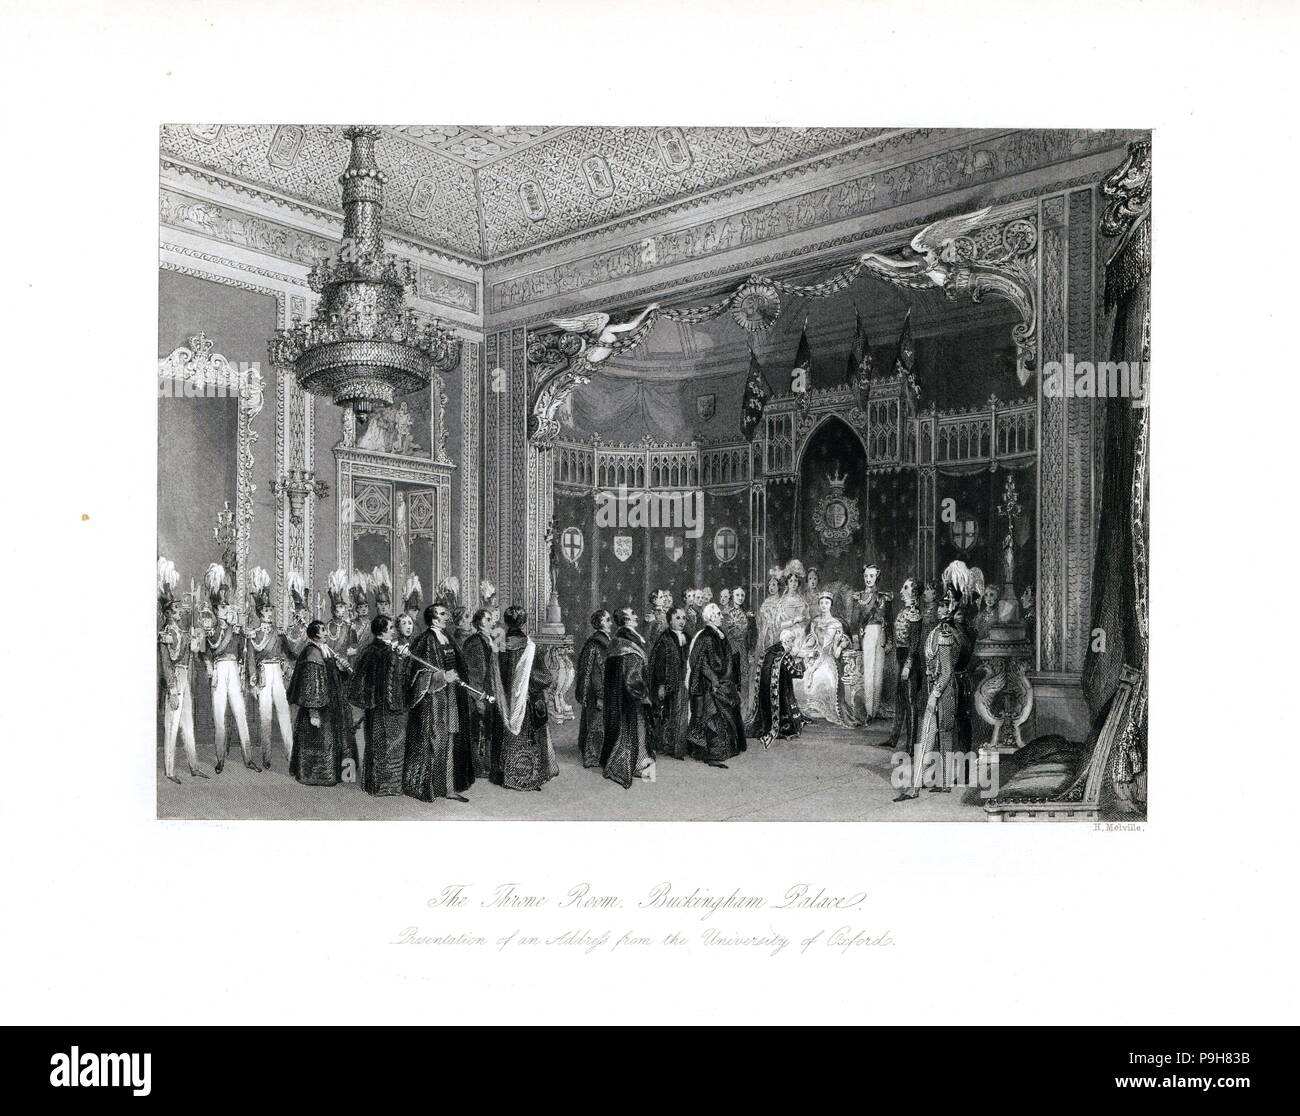 Presentation of an address from the University of Oxford to Queen Victoria in the Throne Room, Buckingham Palace. Steel engraving by Henry Melville after an illustration by Thomas Hosmer Shepherd from London Interiors, Their Costumes and Ceremonies, Joshua Mead, London, 1841. - Stock Image